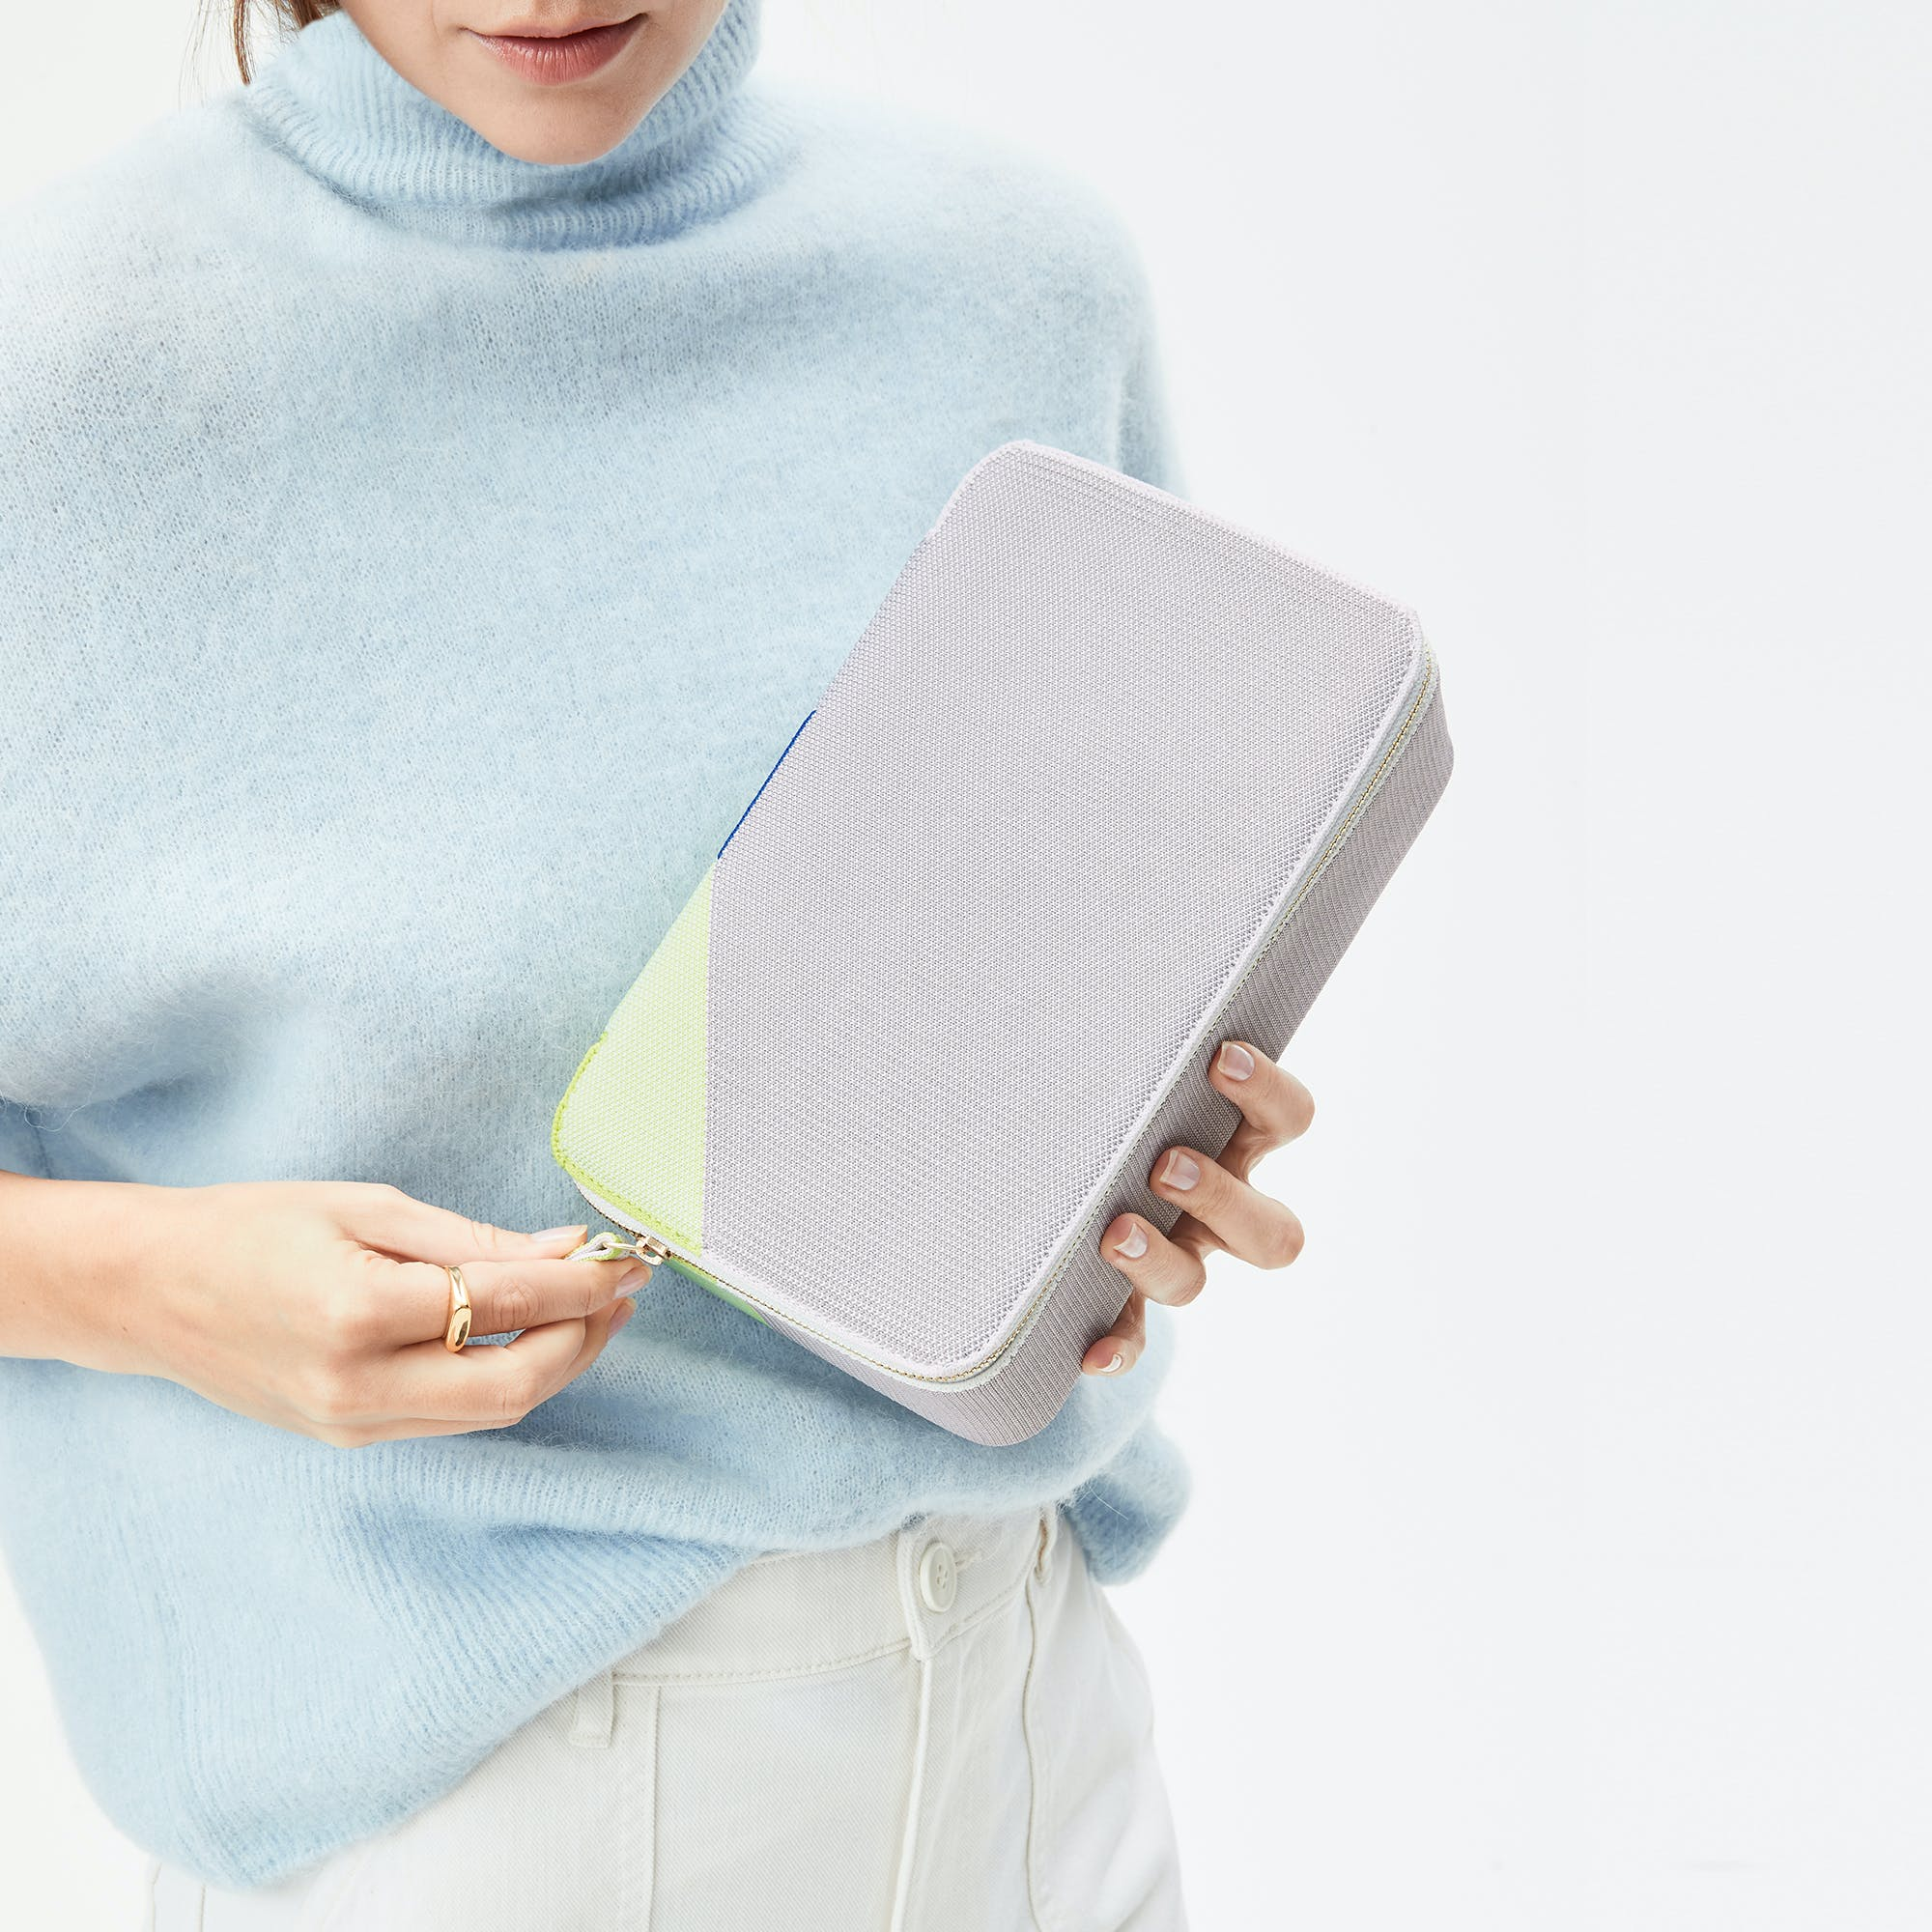 The Large Catchall in Dove Grey shown from the front.